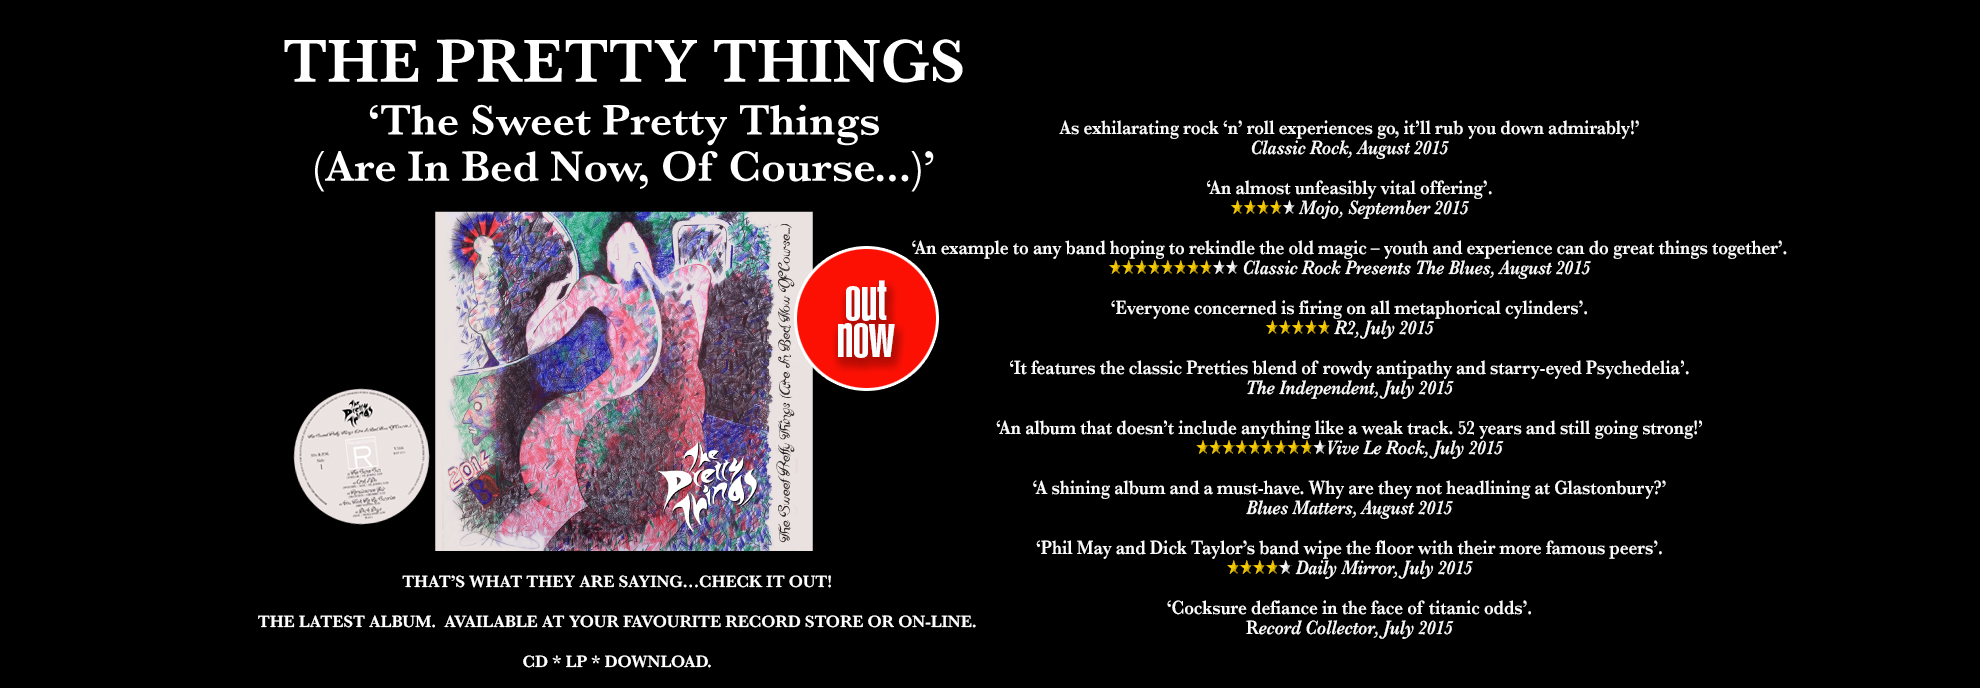 Pretty-things-banner-out-now